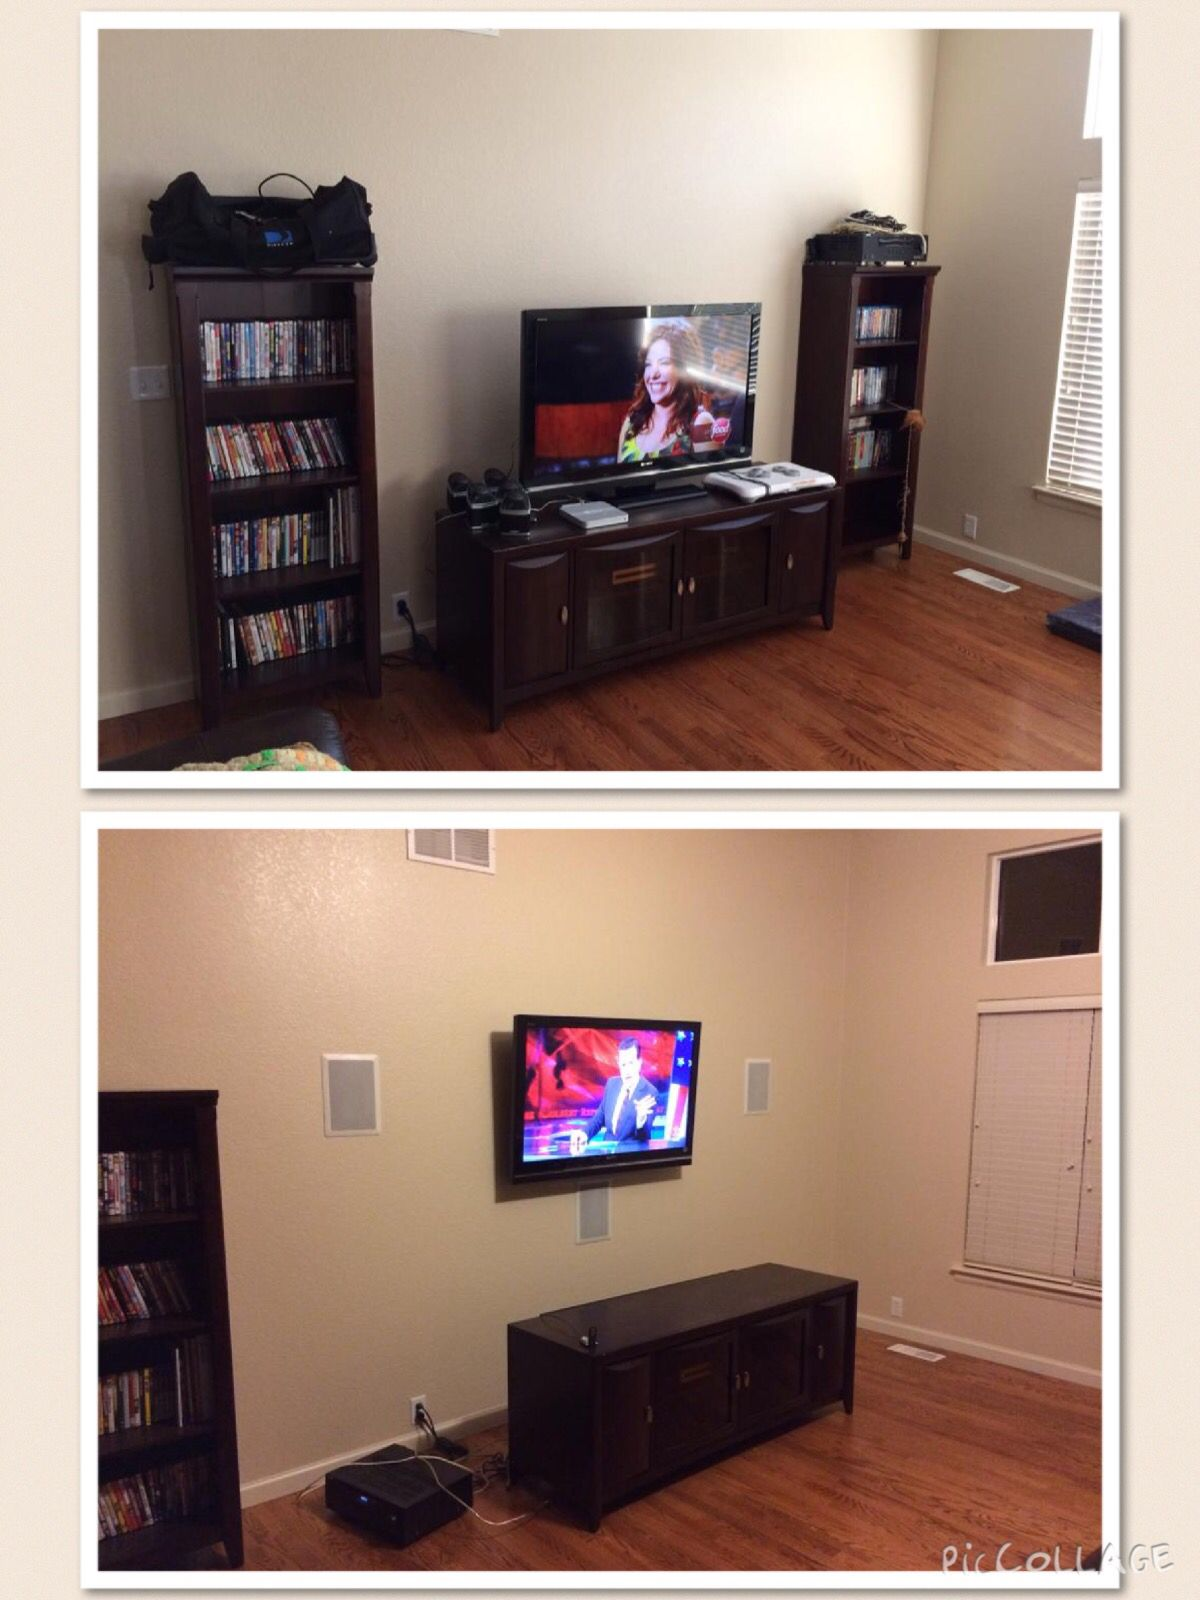 Installed full surround sound with in wall speakers, TV mount